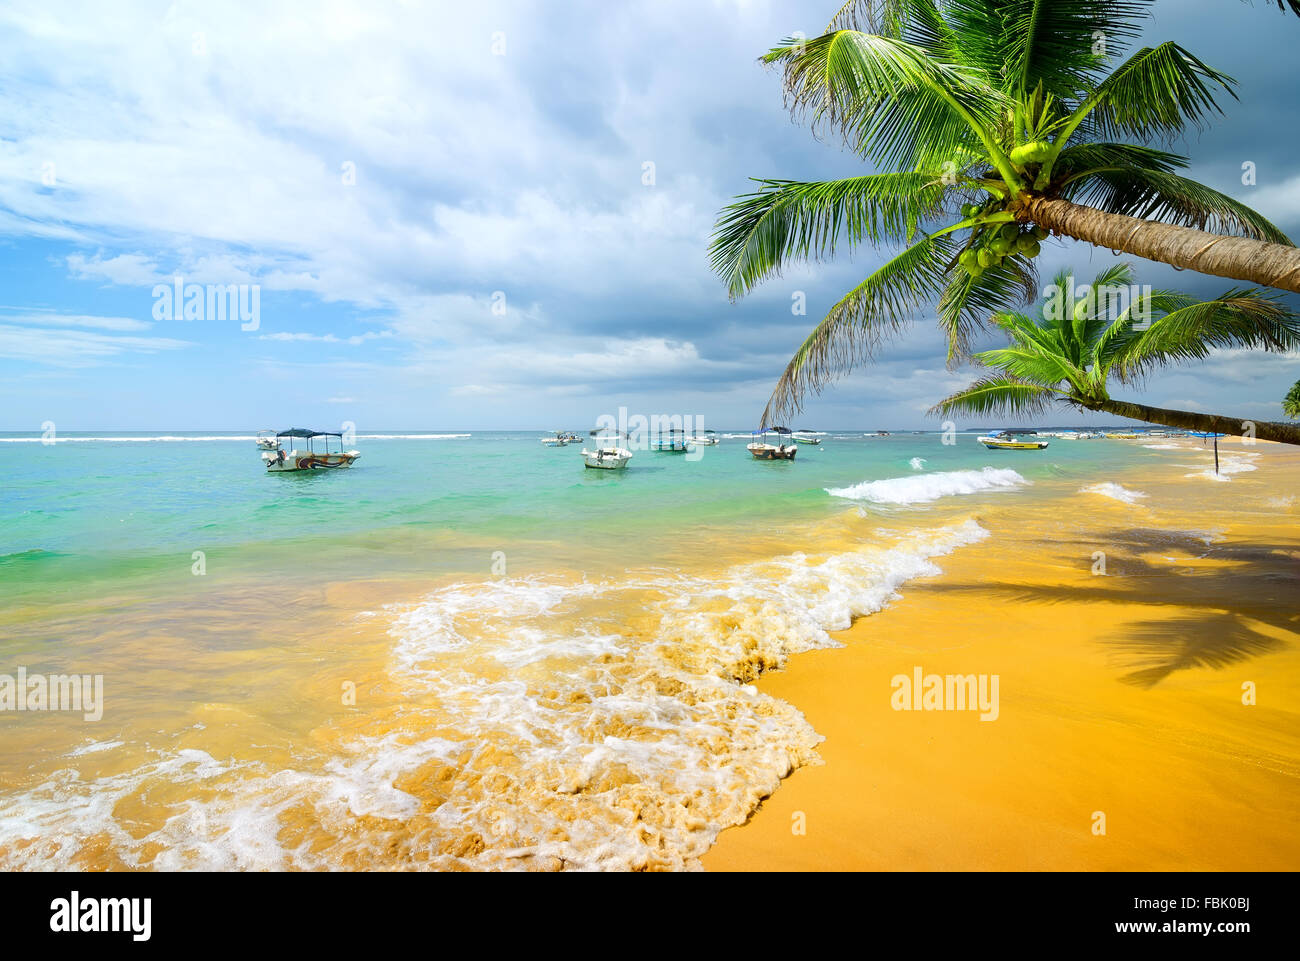 Boats in the ocean near sandy beach and palm trees - Stock Image